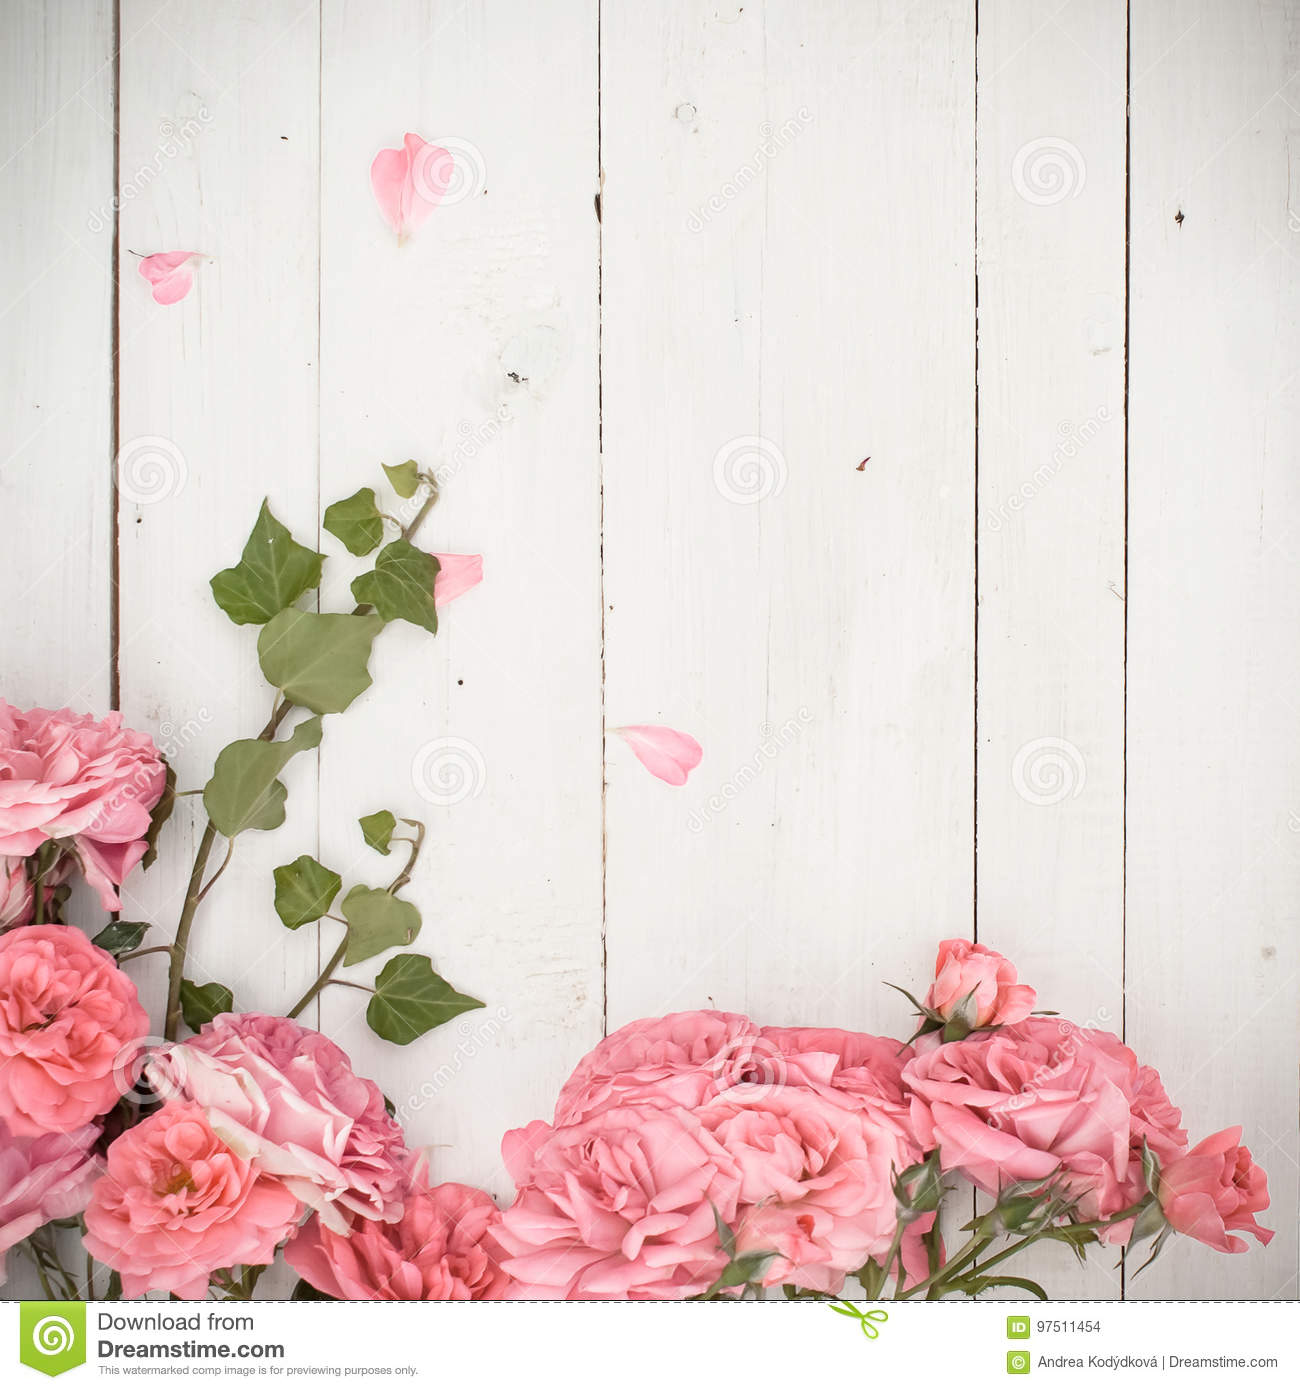 Romantic pink roses and branches of ivy on white wooden background